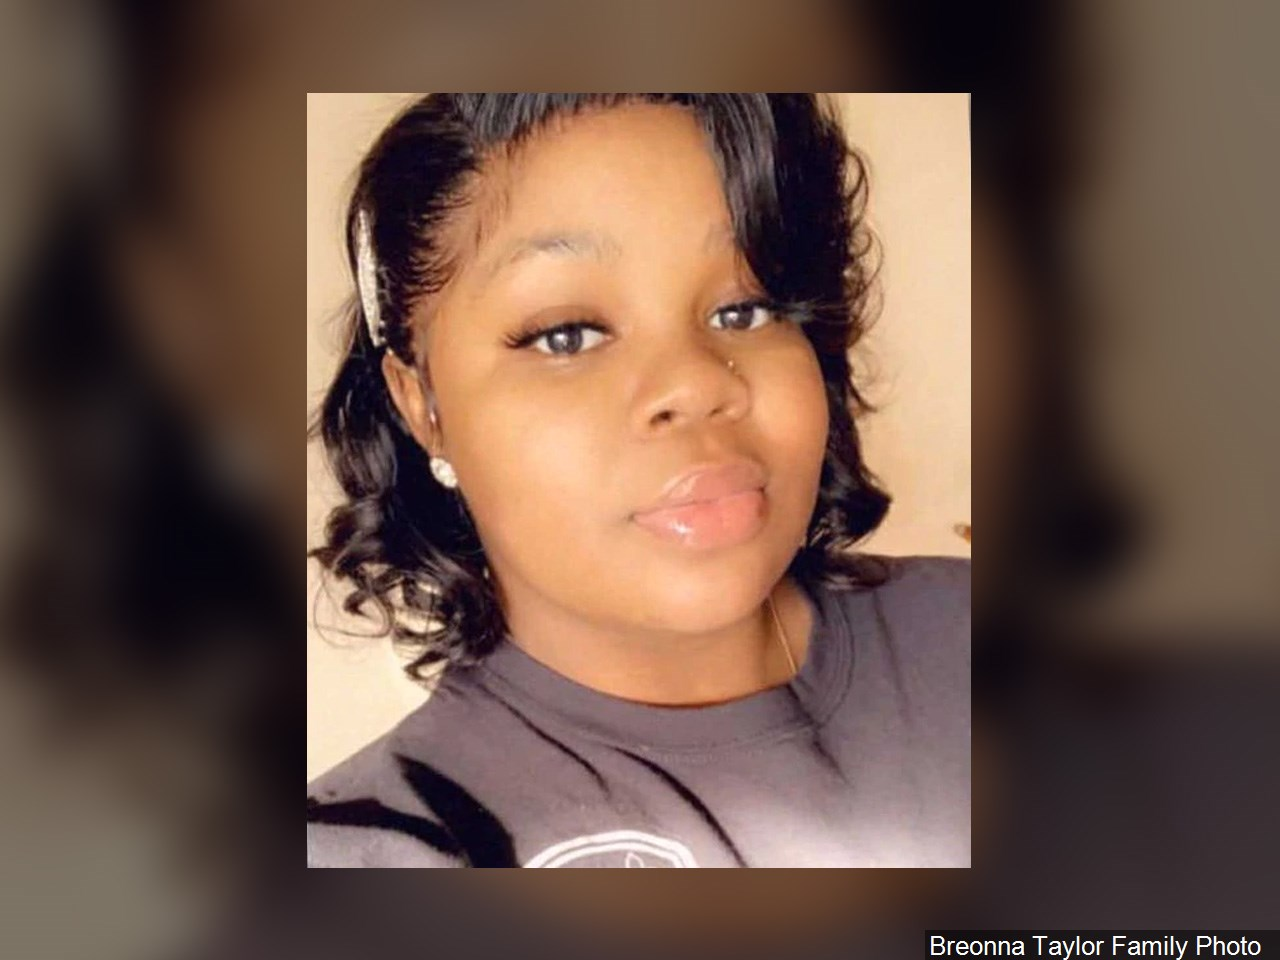 Settlement reached in fatal Kentucky police shooting of Breonna Taylor